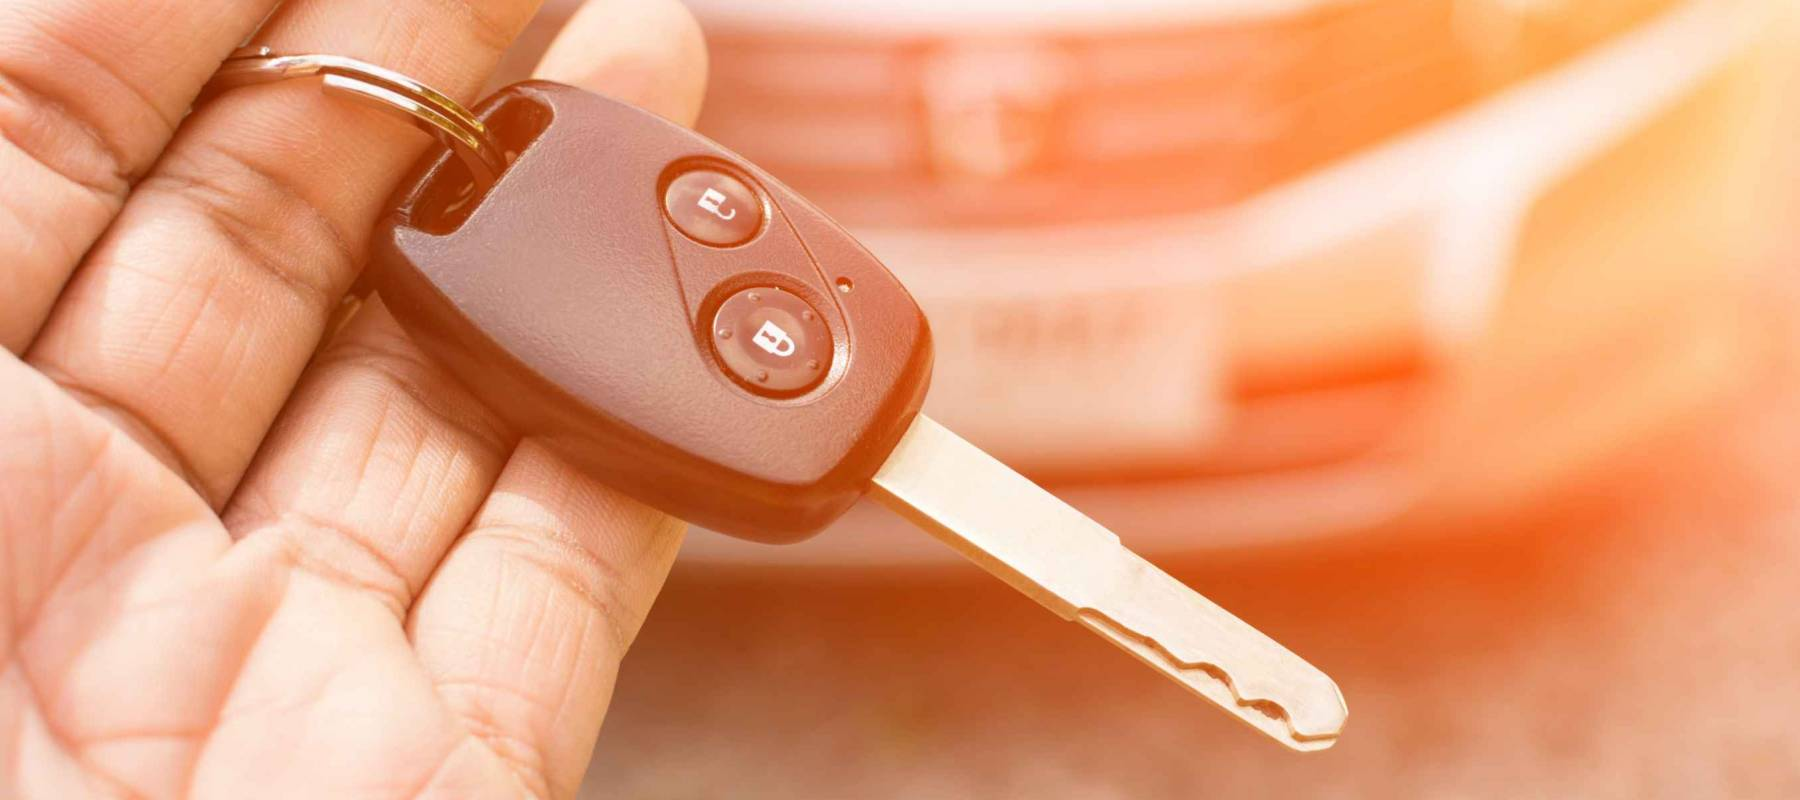 Car key in hand and color tone effect